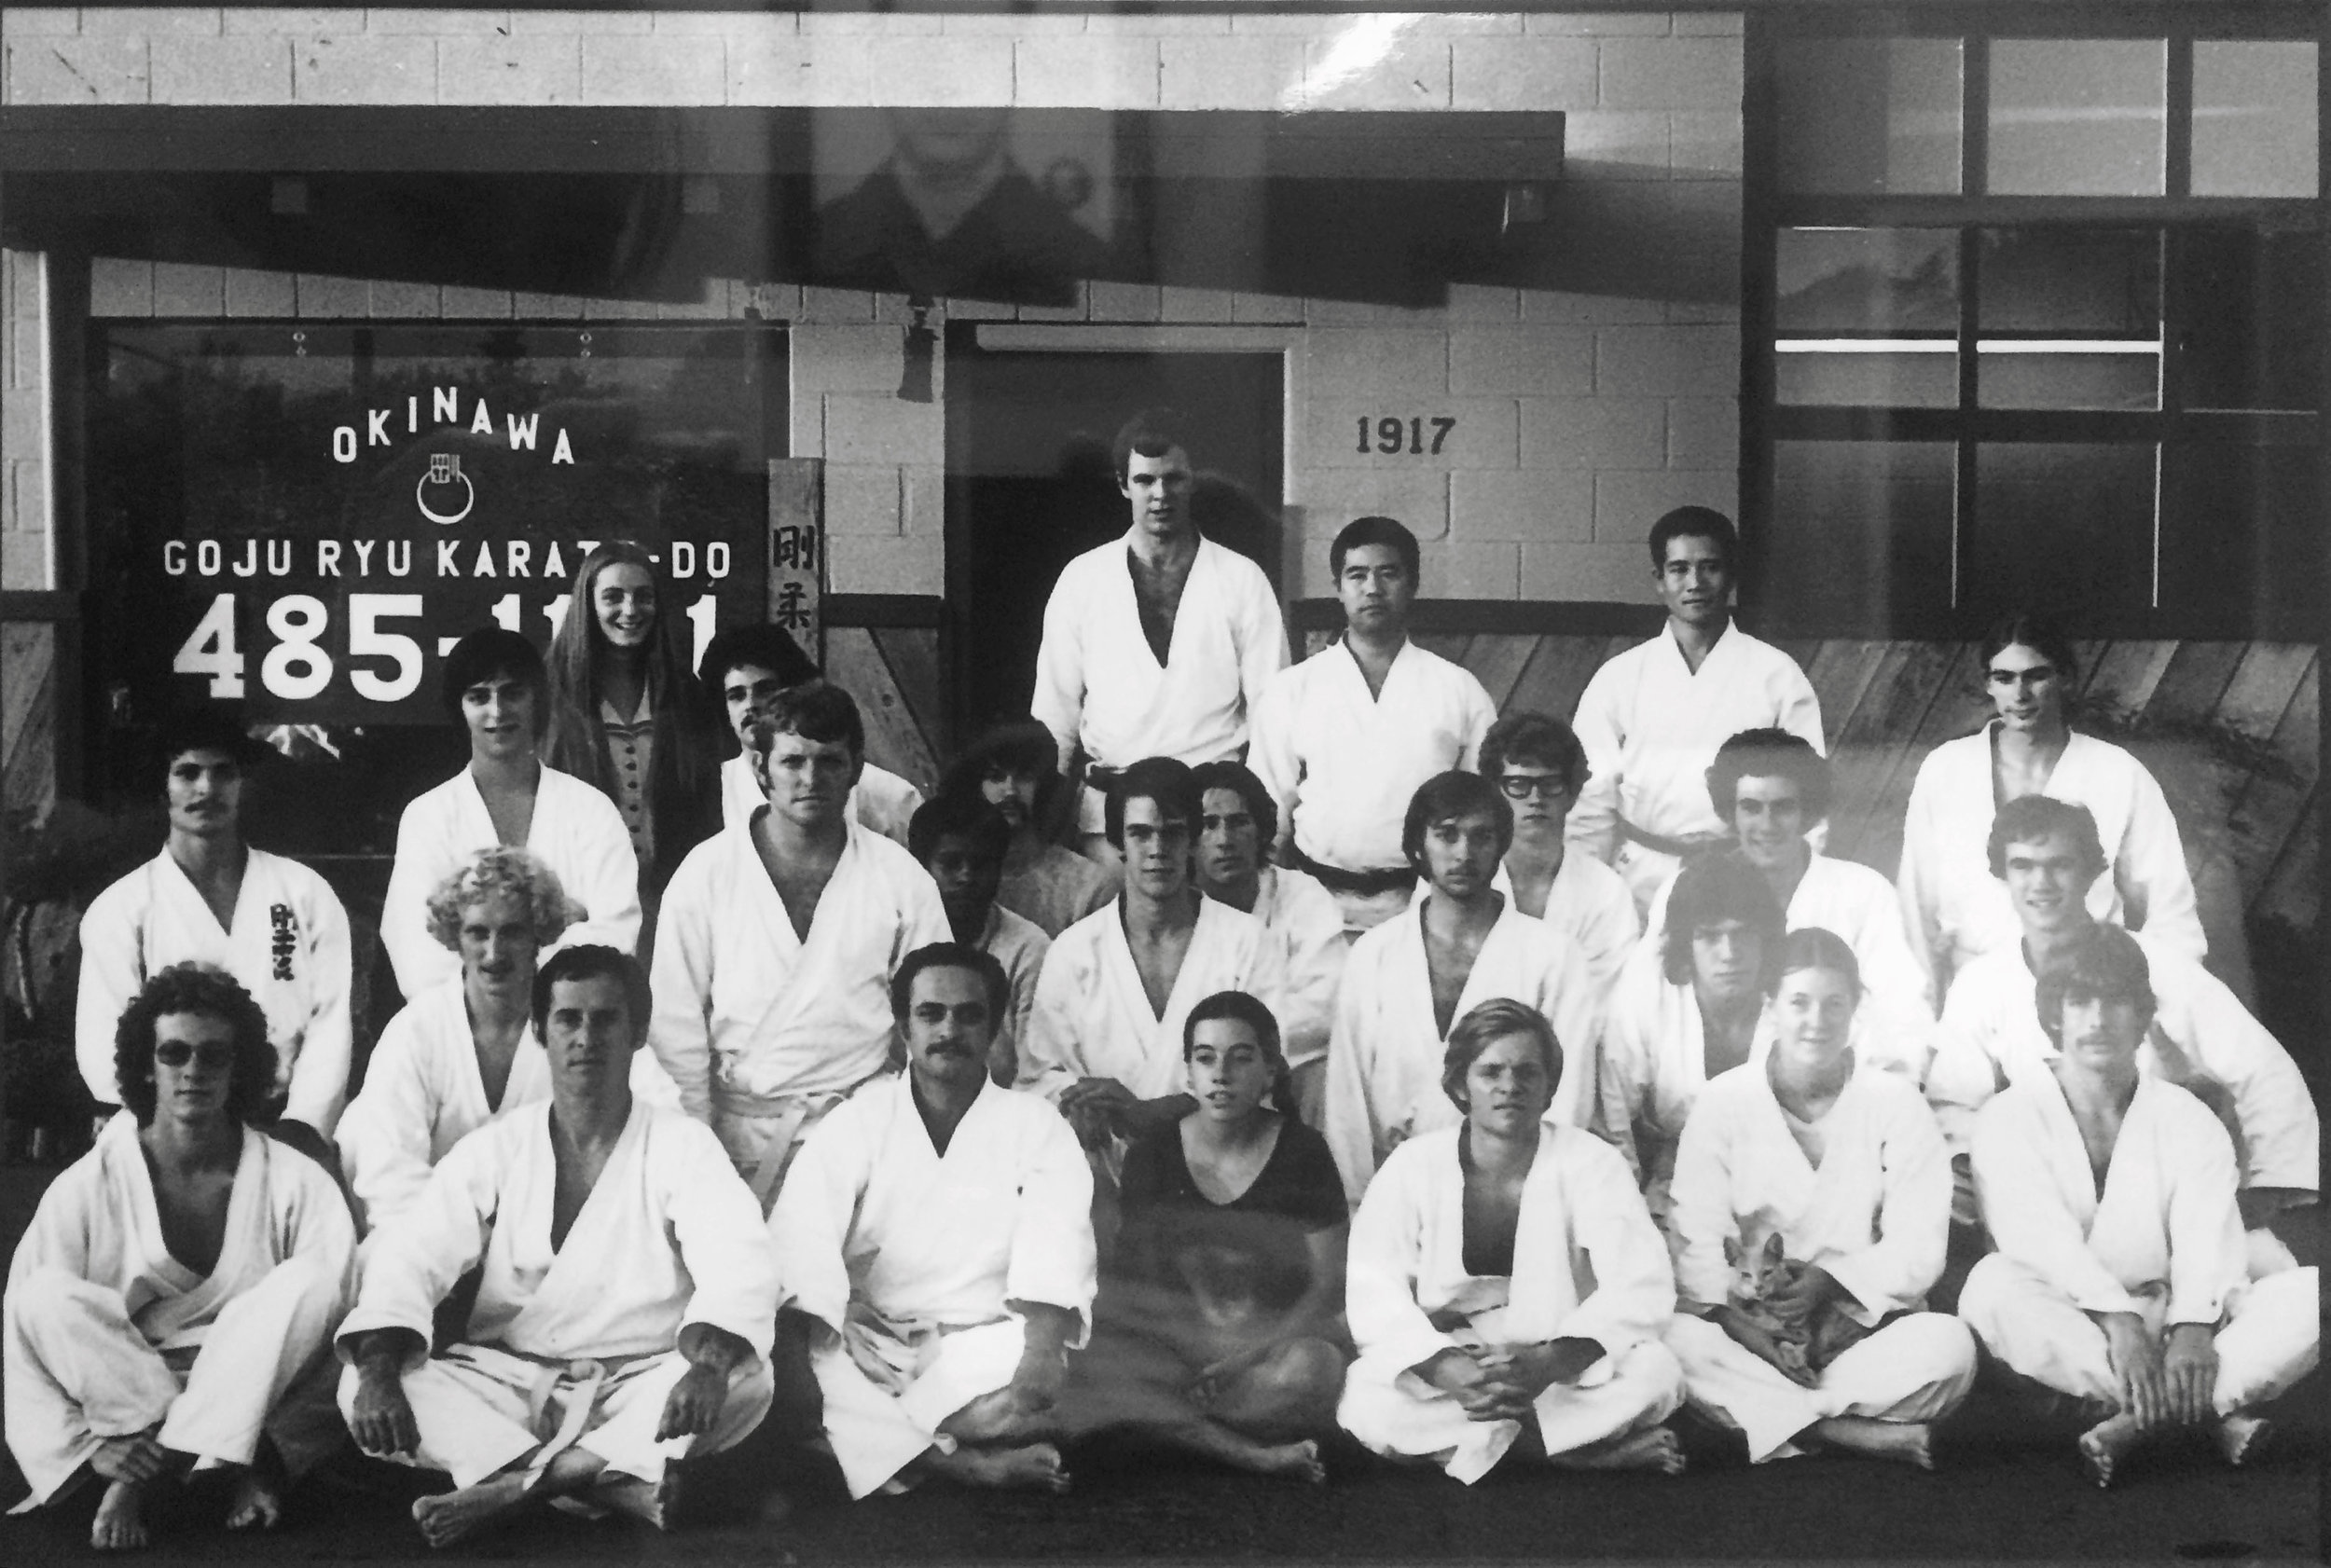 The Dojo Origins in Eugene, OR